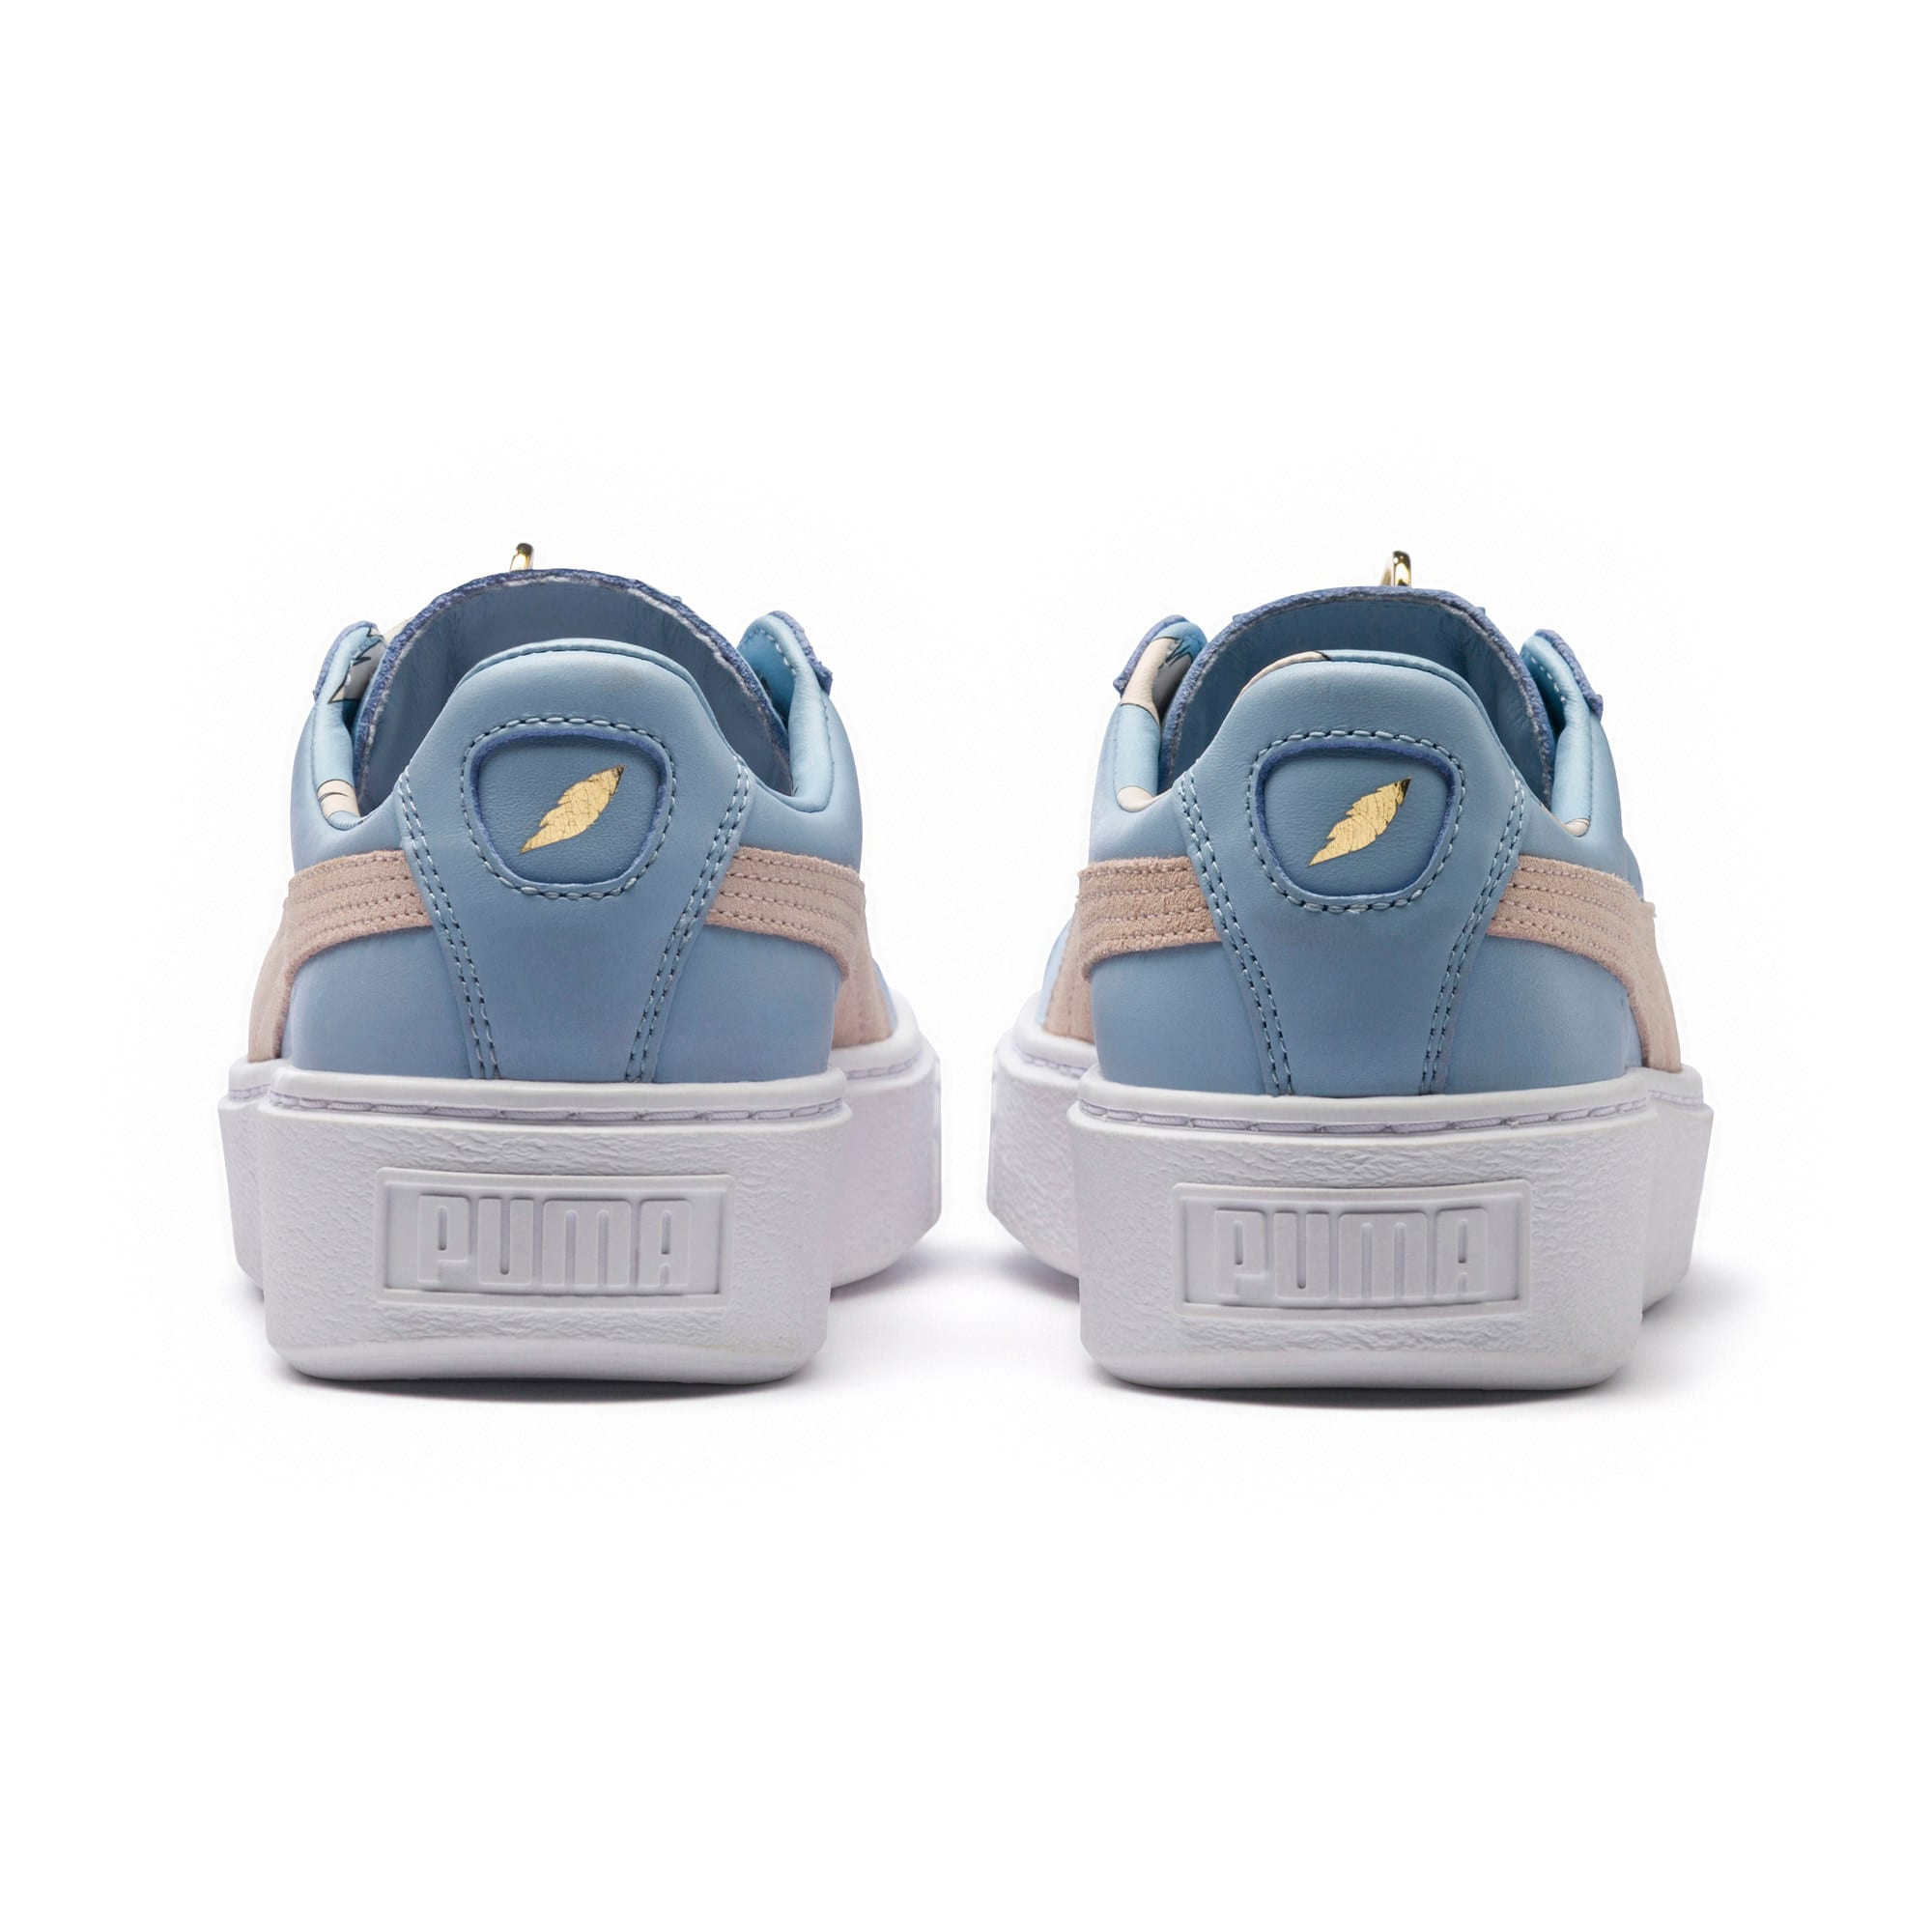 Thumbnail 4 of Basket Platform Coach Women's Trainers, Silver Peony-Cashmere Blue, medium-IND